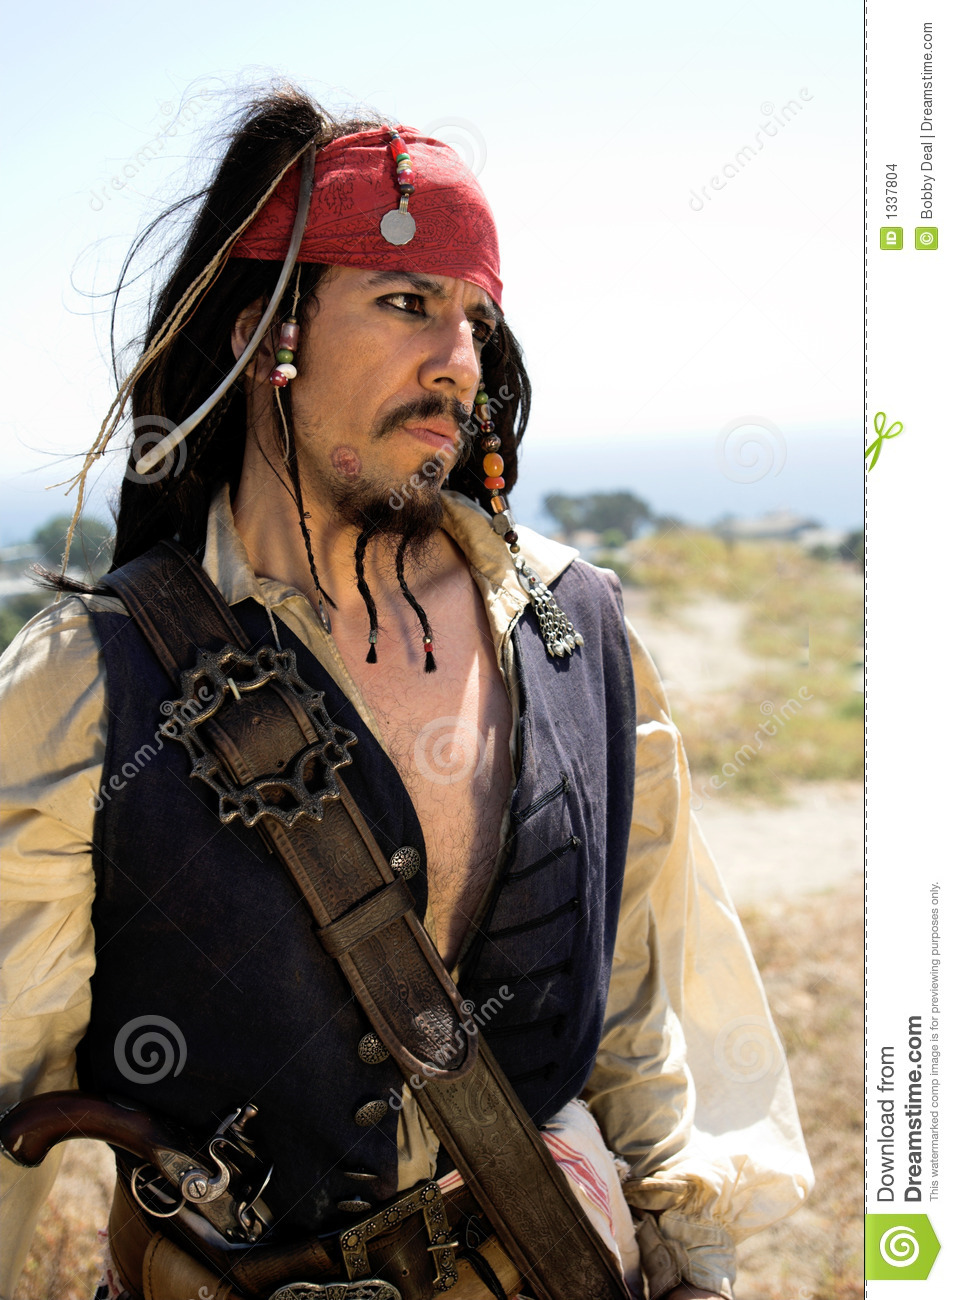 Pirate Captain Alert